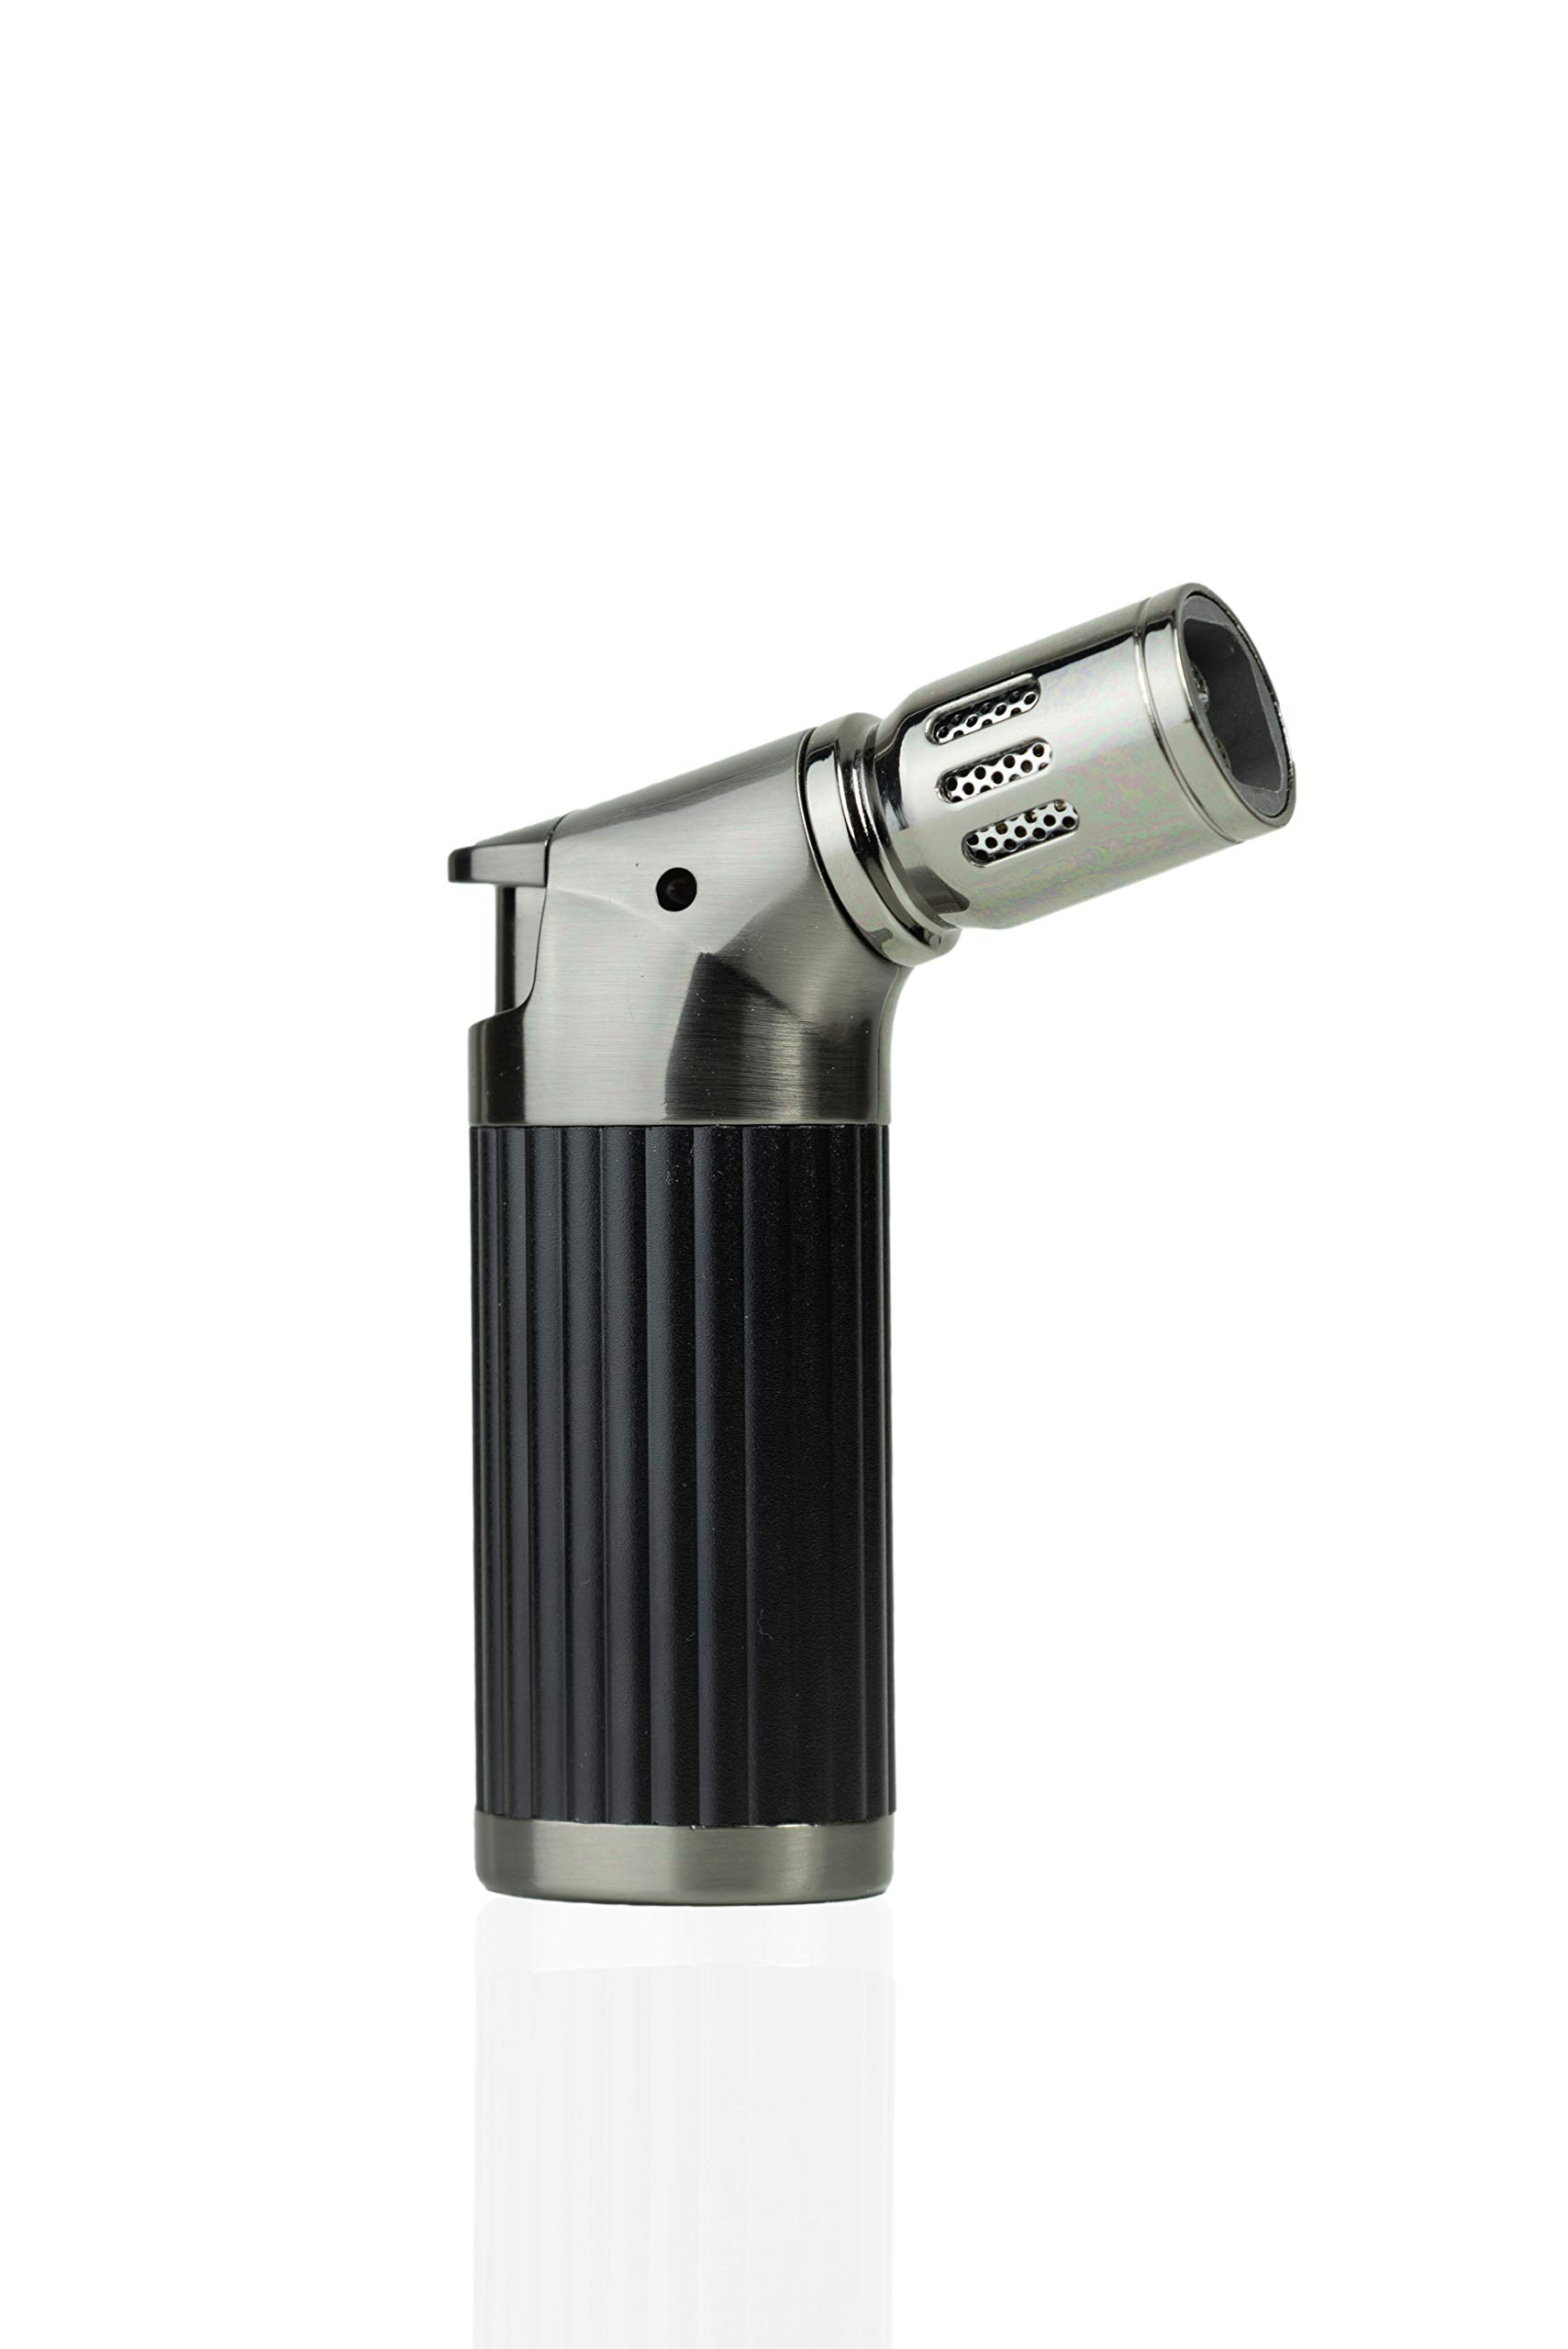 Torch Lighter for Bripe Coffee, Cigars, Cooking- Quad Jet Refillable (Black)